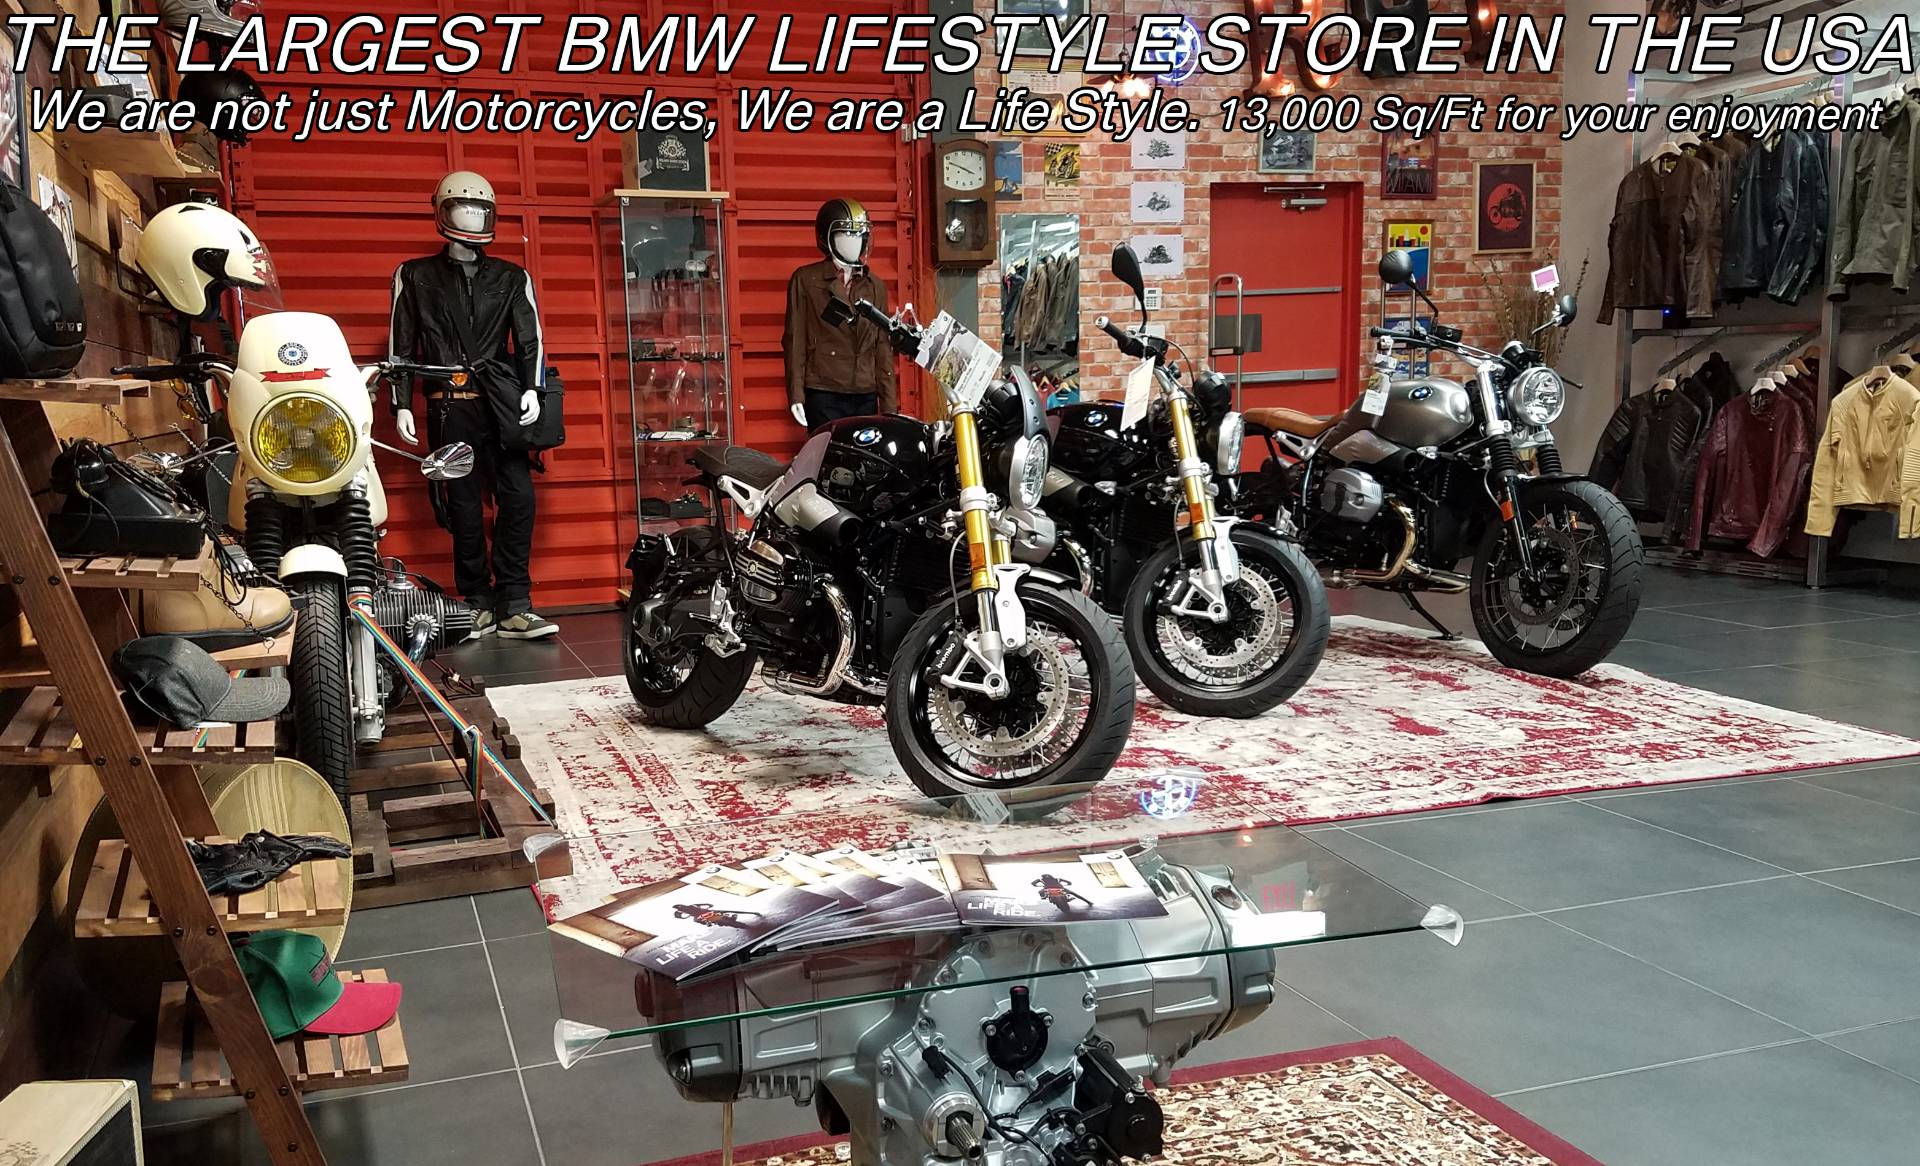 New 2019 BMW R 1250 GS for sale, BMW R 1250GS for sale, BMW Motorcycle GS, new BMW GS, Spirit of GS, BMW Motorcycles of Miami, Motorcycles of Miami, Motorcycles Miami, New Motorcycles, Used Motorcycles, pre-owned. #BMWMotorcyclesOfMiami #MotorcyclesOfMiami. - Photo 36